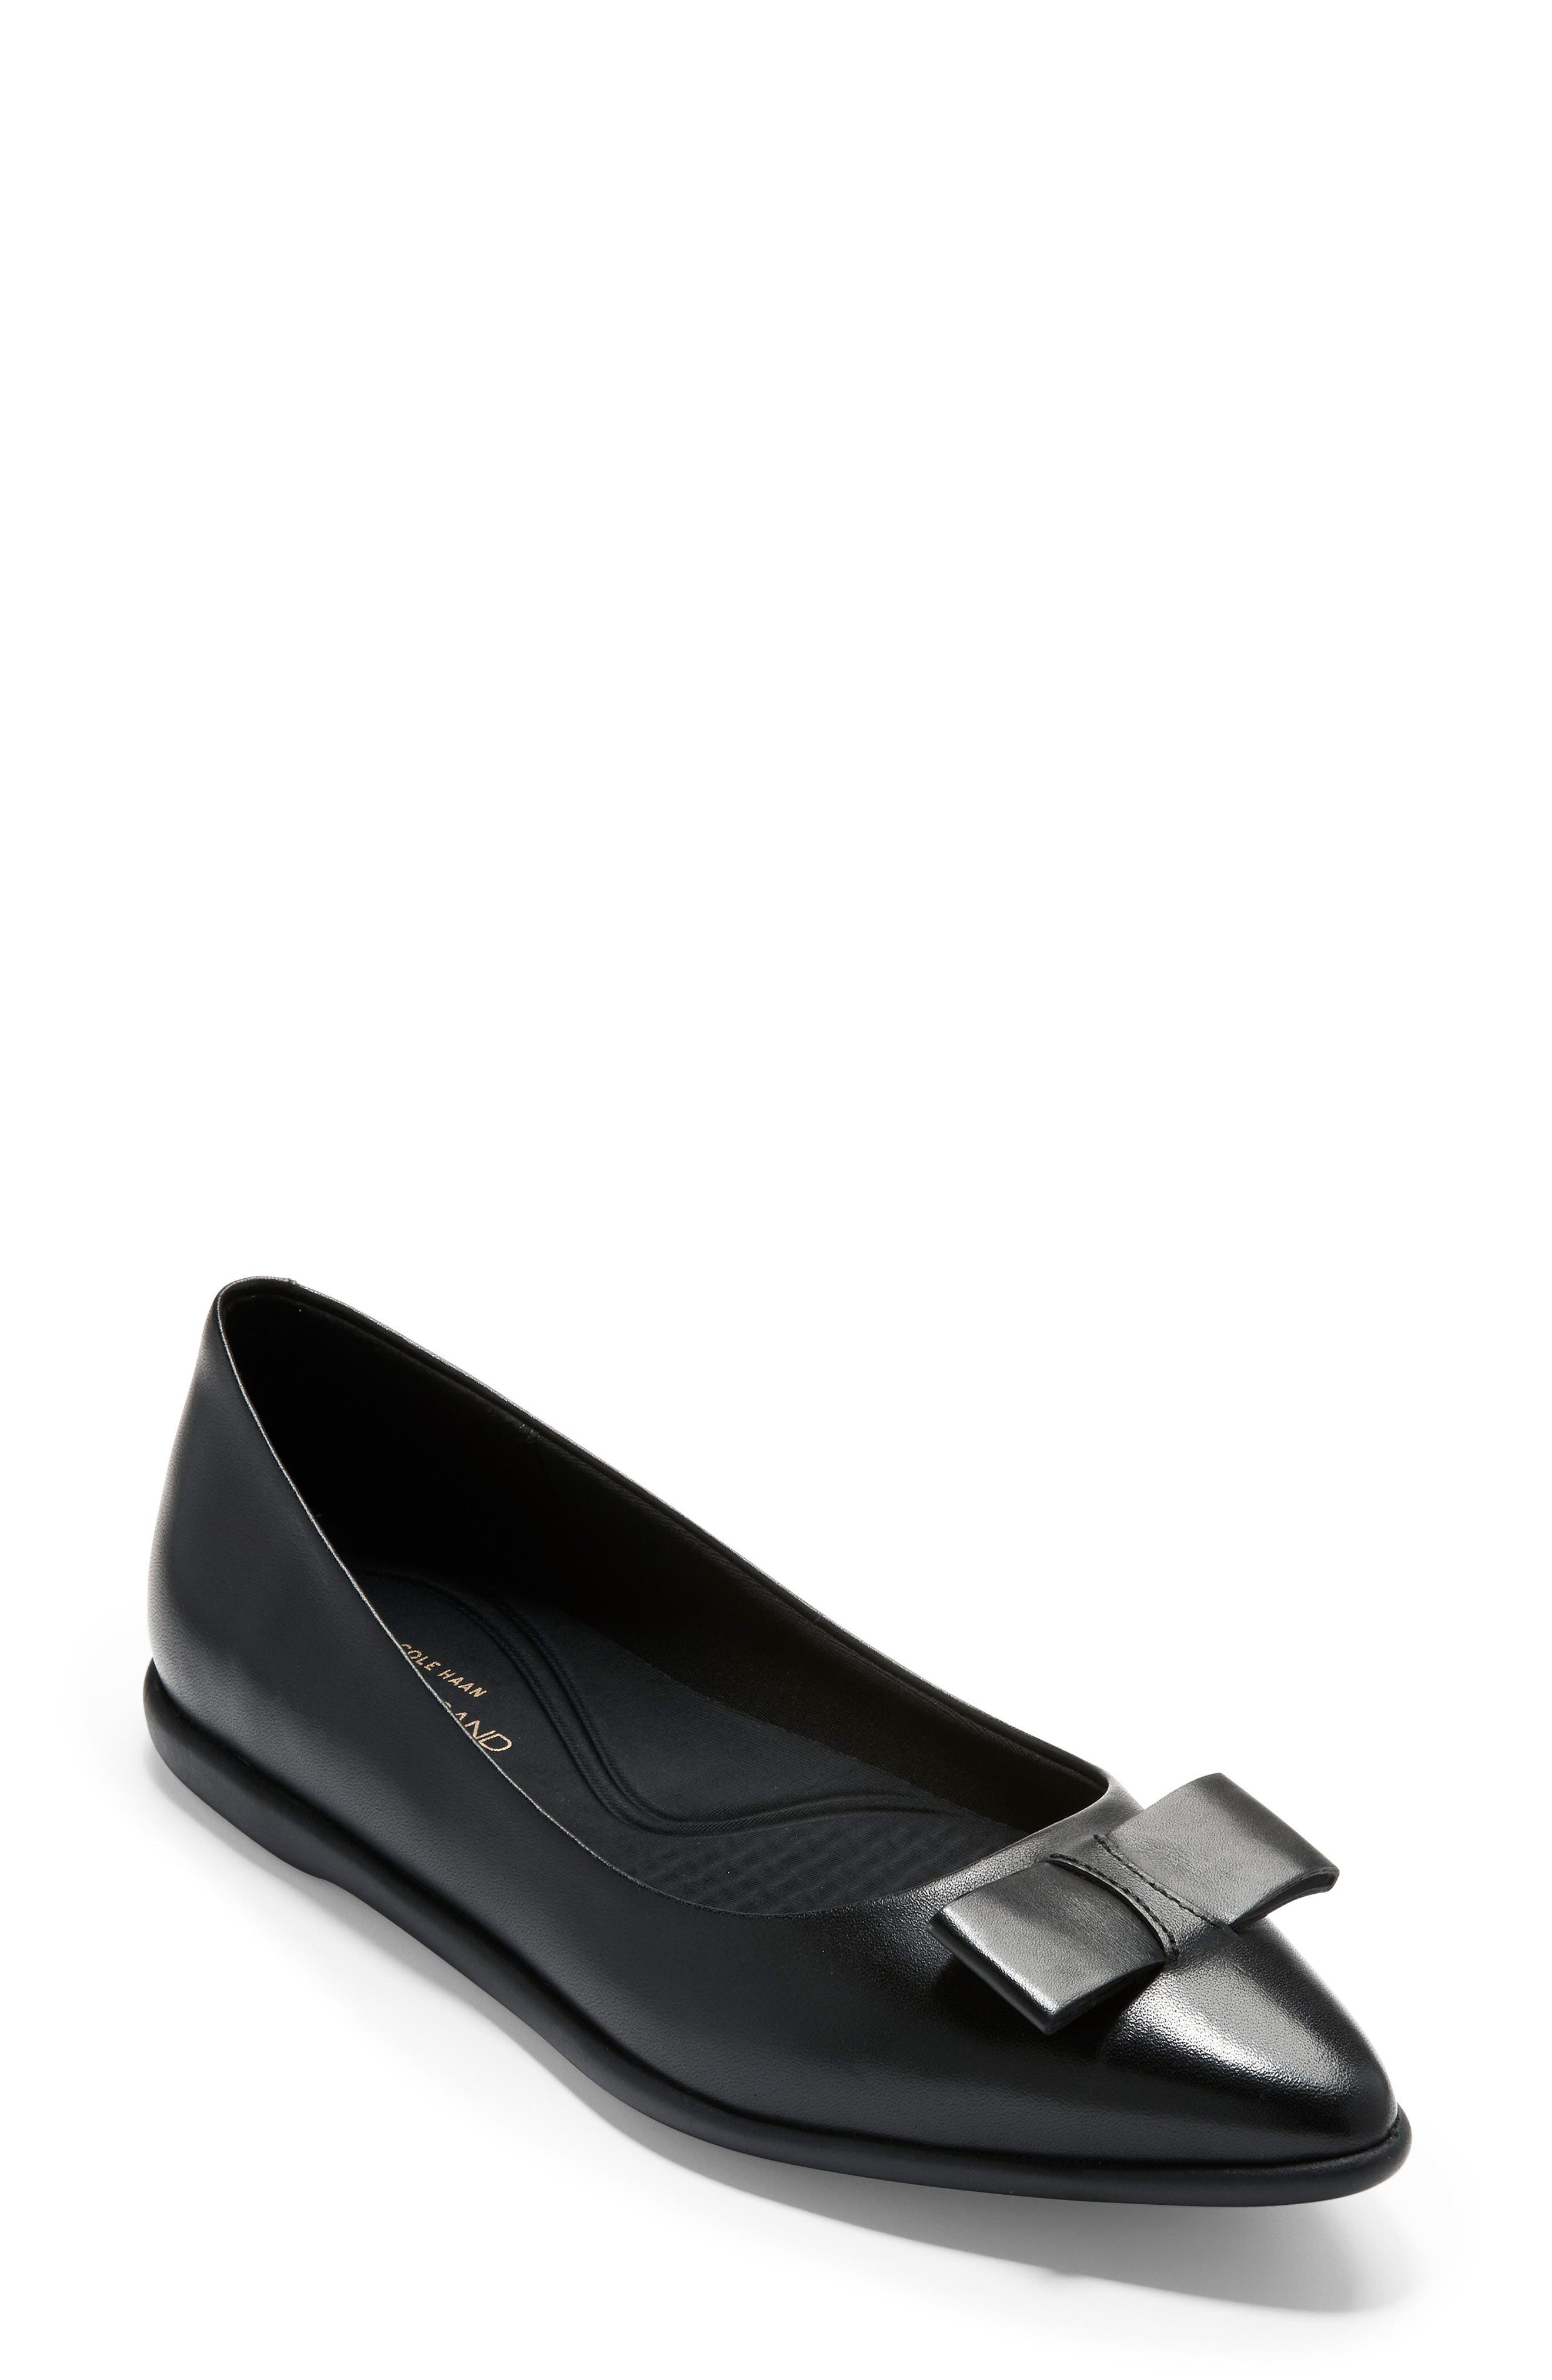 COLE HAAN 3.ZeroGrand Skimmer Flat, Main, color, BLACK LEATHER